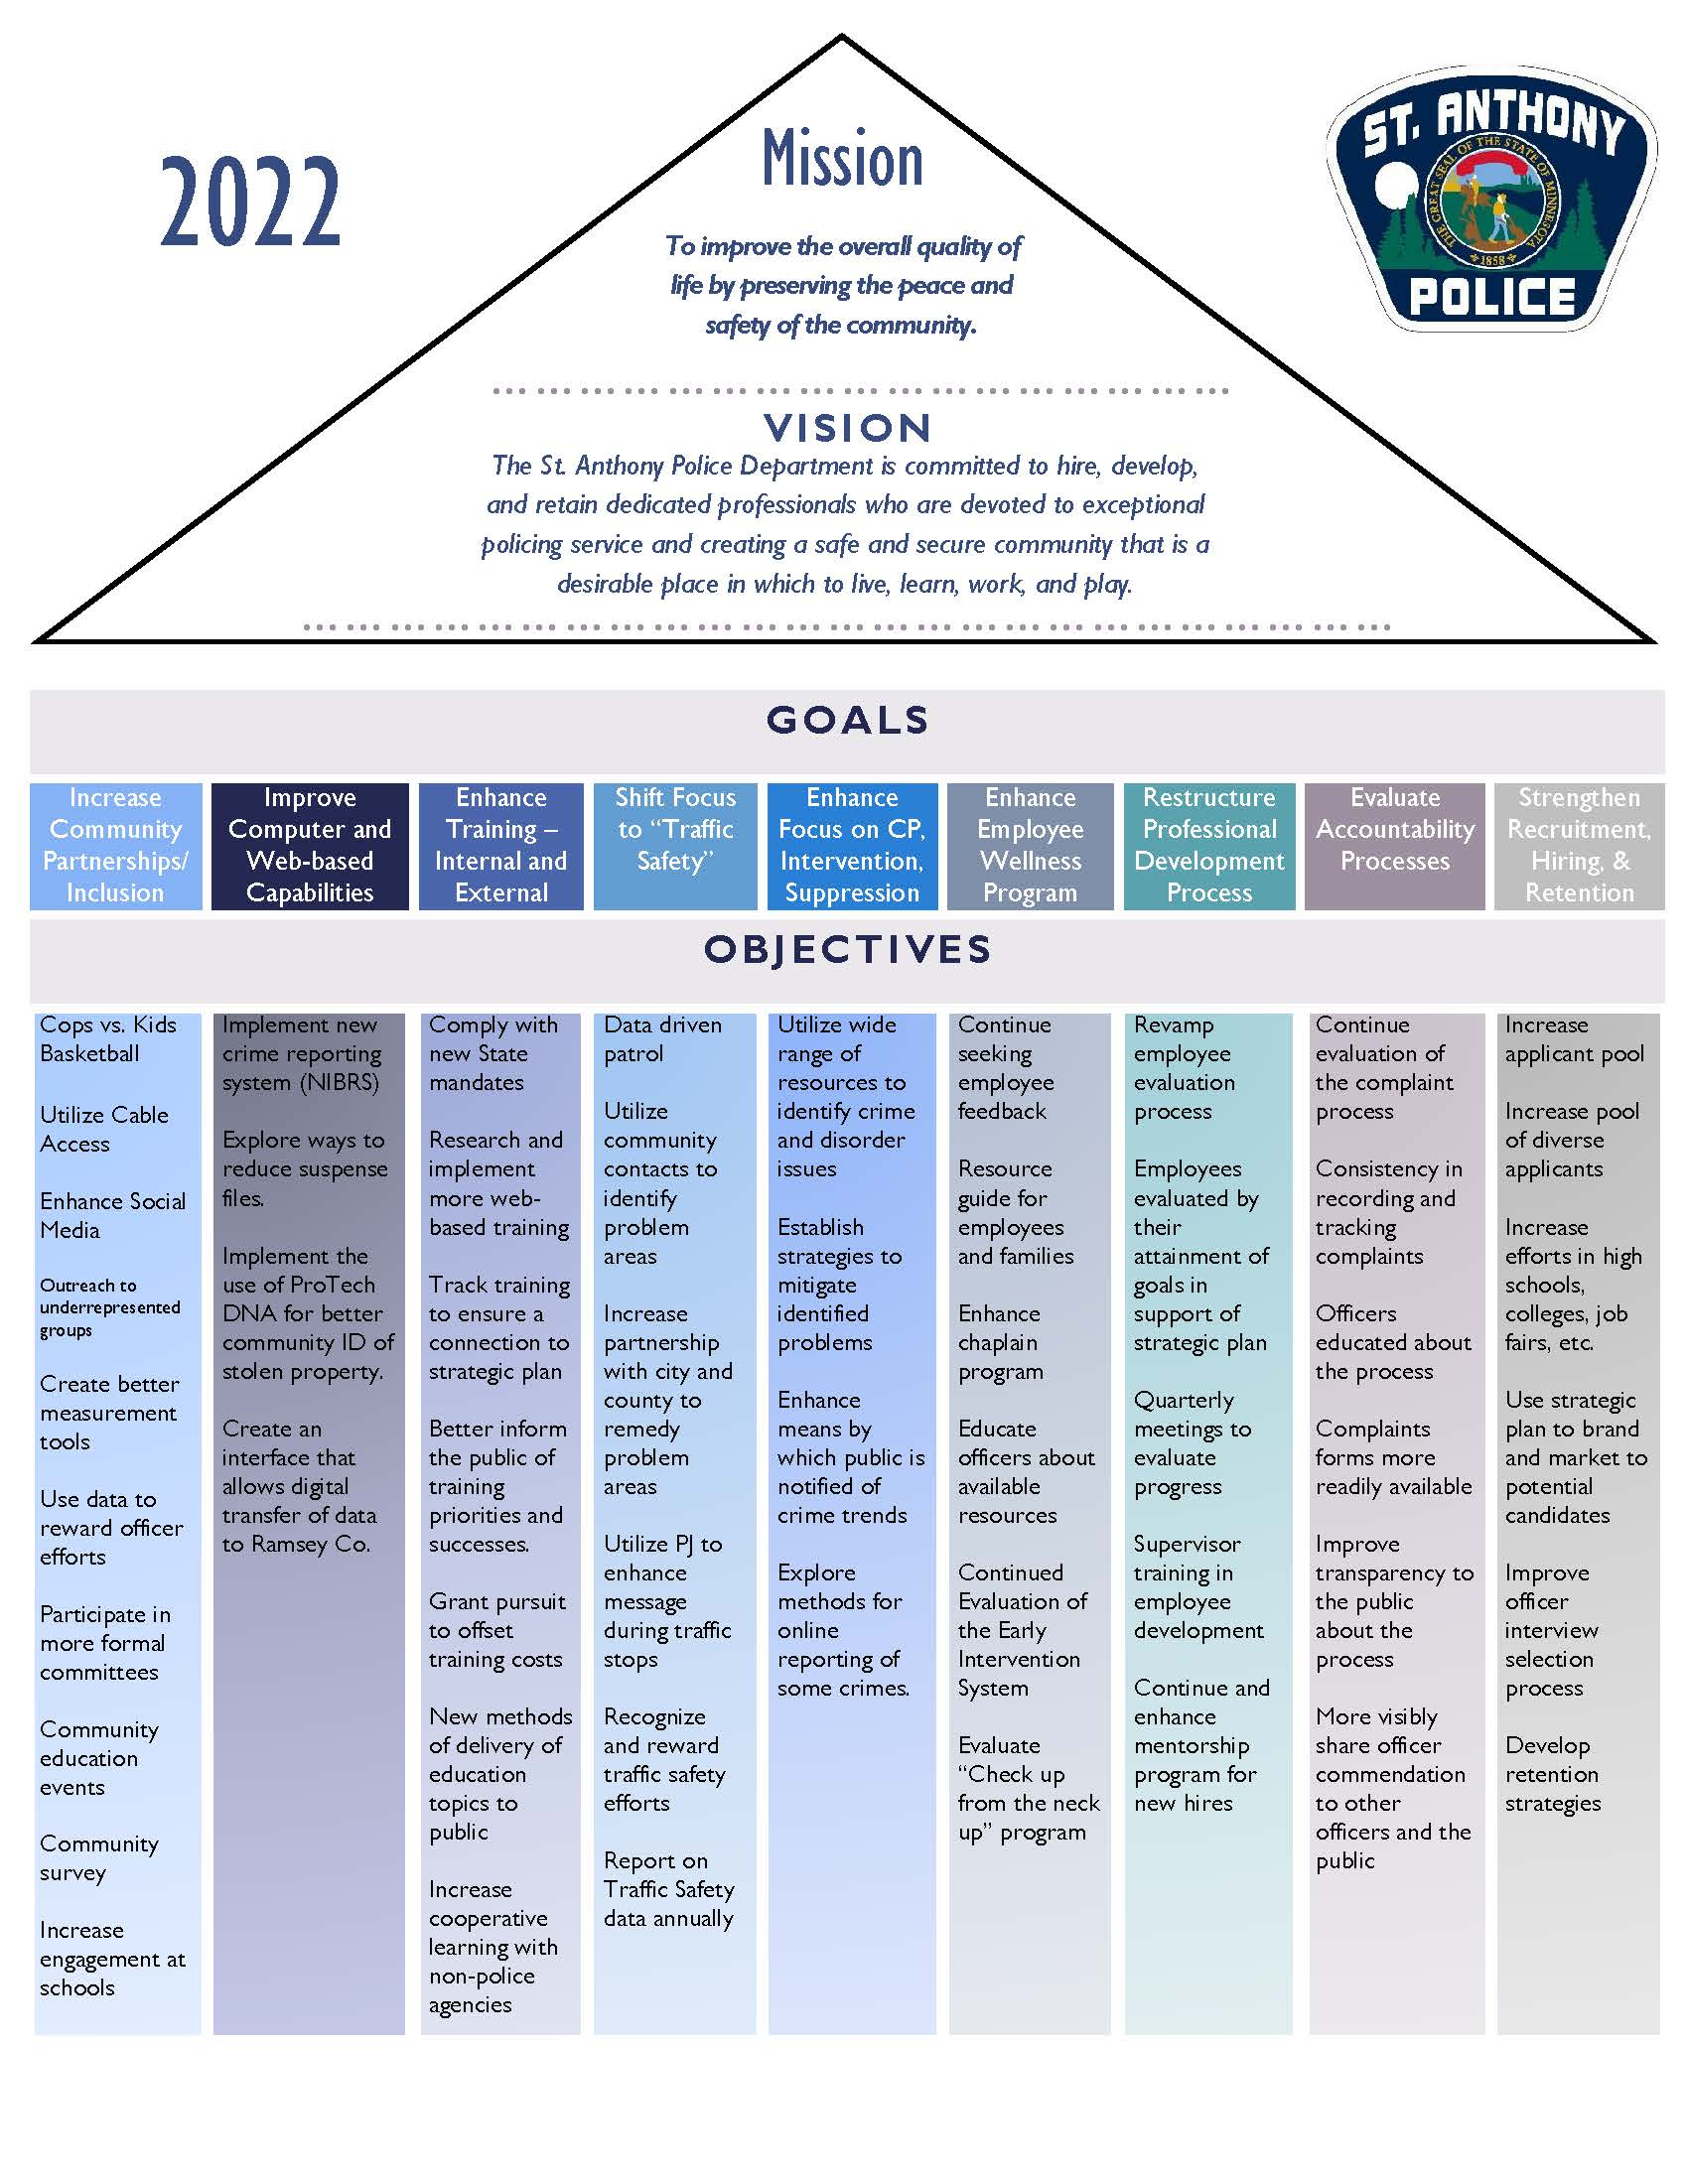 2019 St. Anthony Police Department Vision and Goals Pyramid